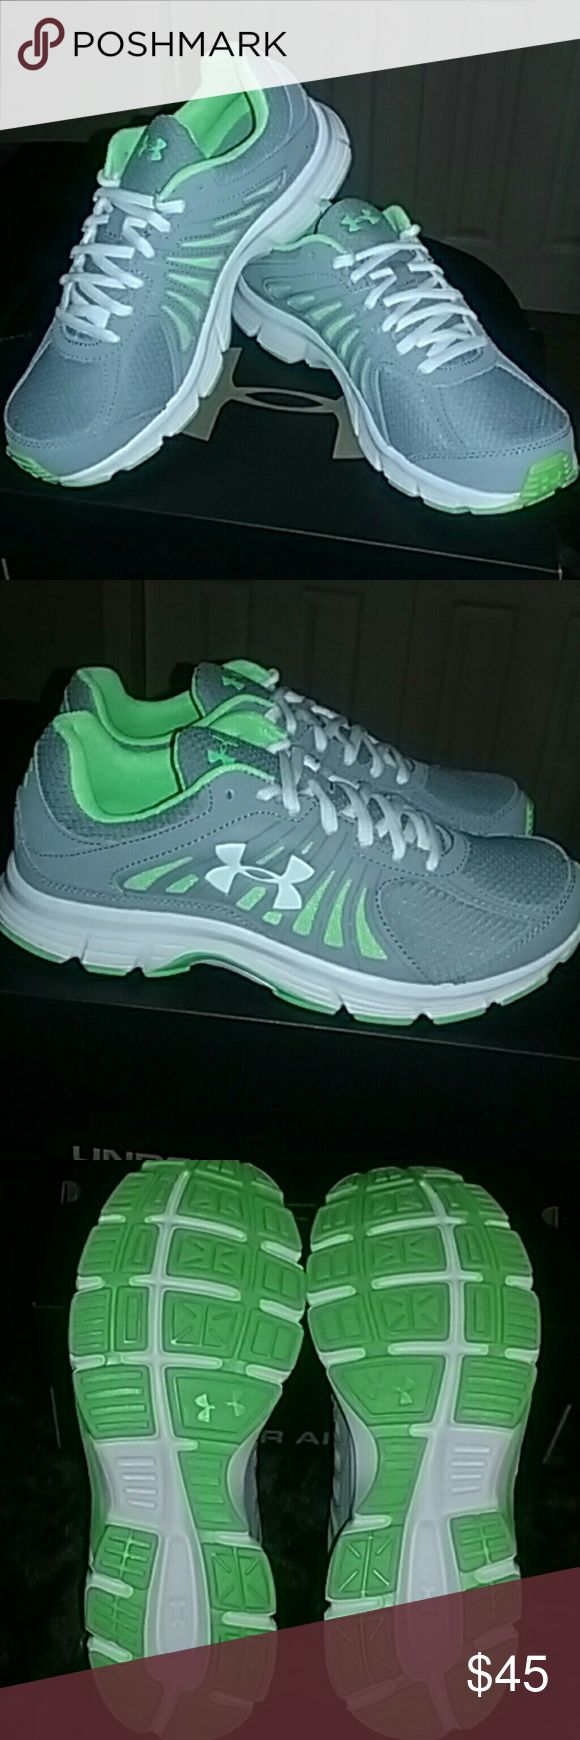 Under Armour Ladies Running Shoes Under Armour Ladies Running Shoes size 8. Super cute never worn in mint condition. Under Armour Shoes Athletic Shoes